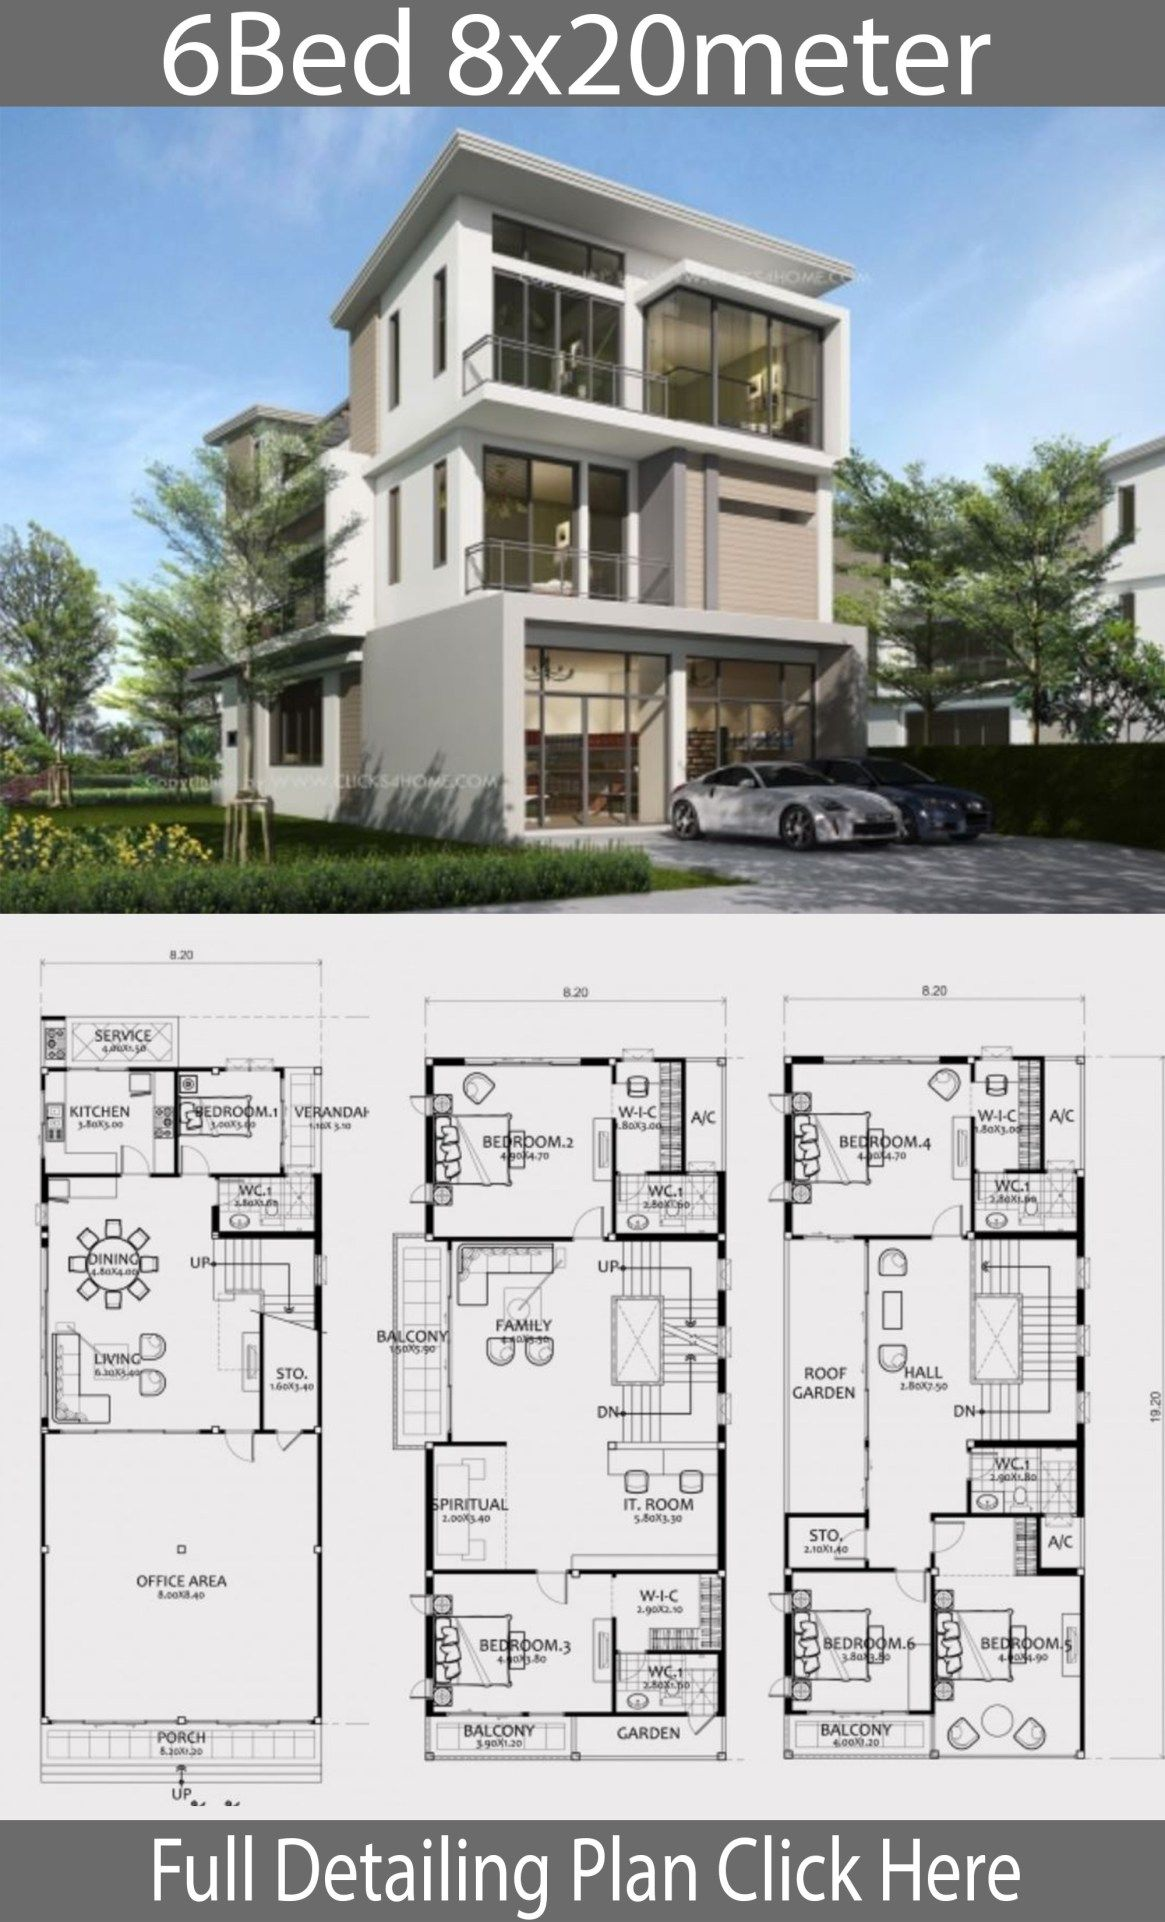 Home Design Plan 8x20m With 6 Bedrooms Home Design With Plansearch Modern Style House Plans Architectural House Plans Modern House Plans